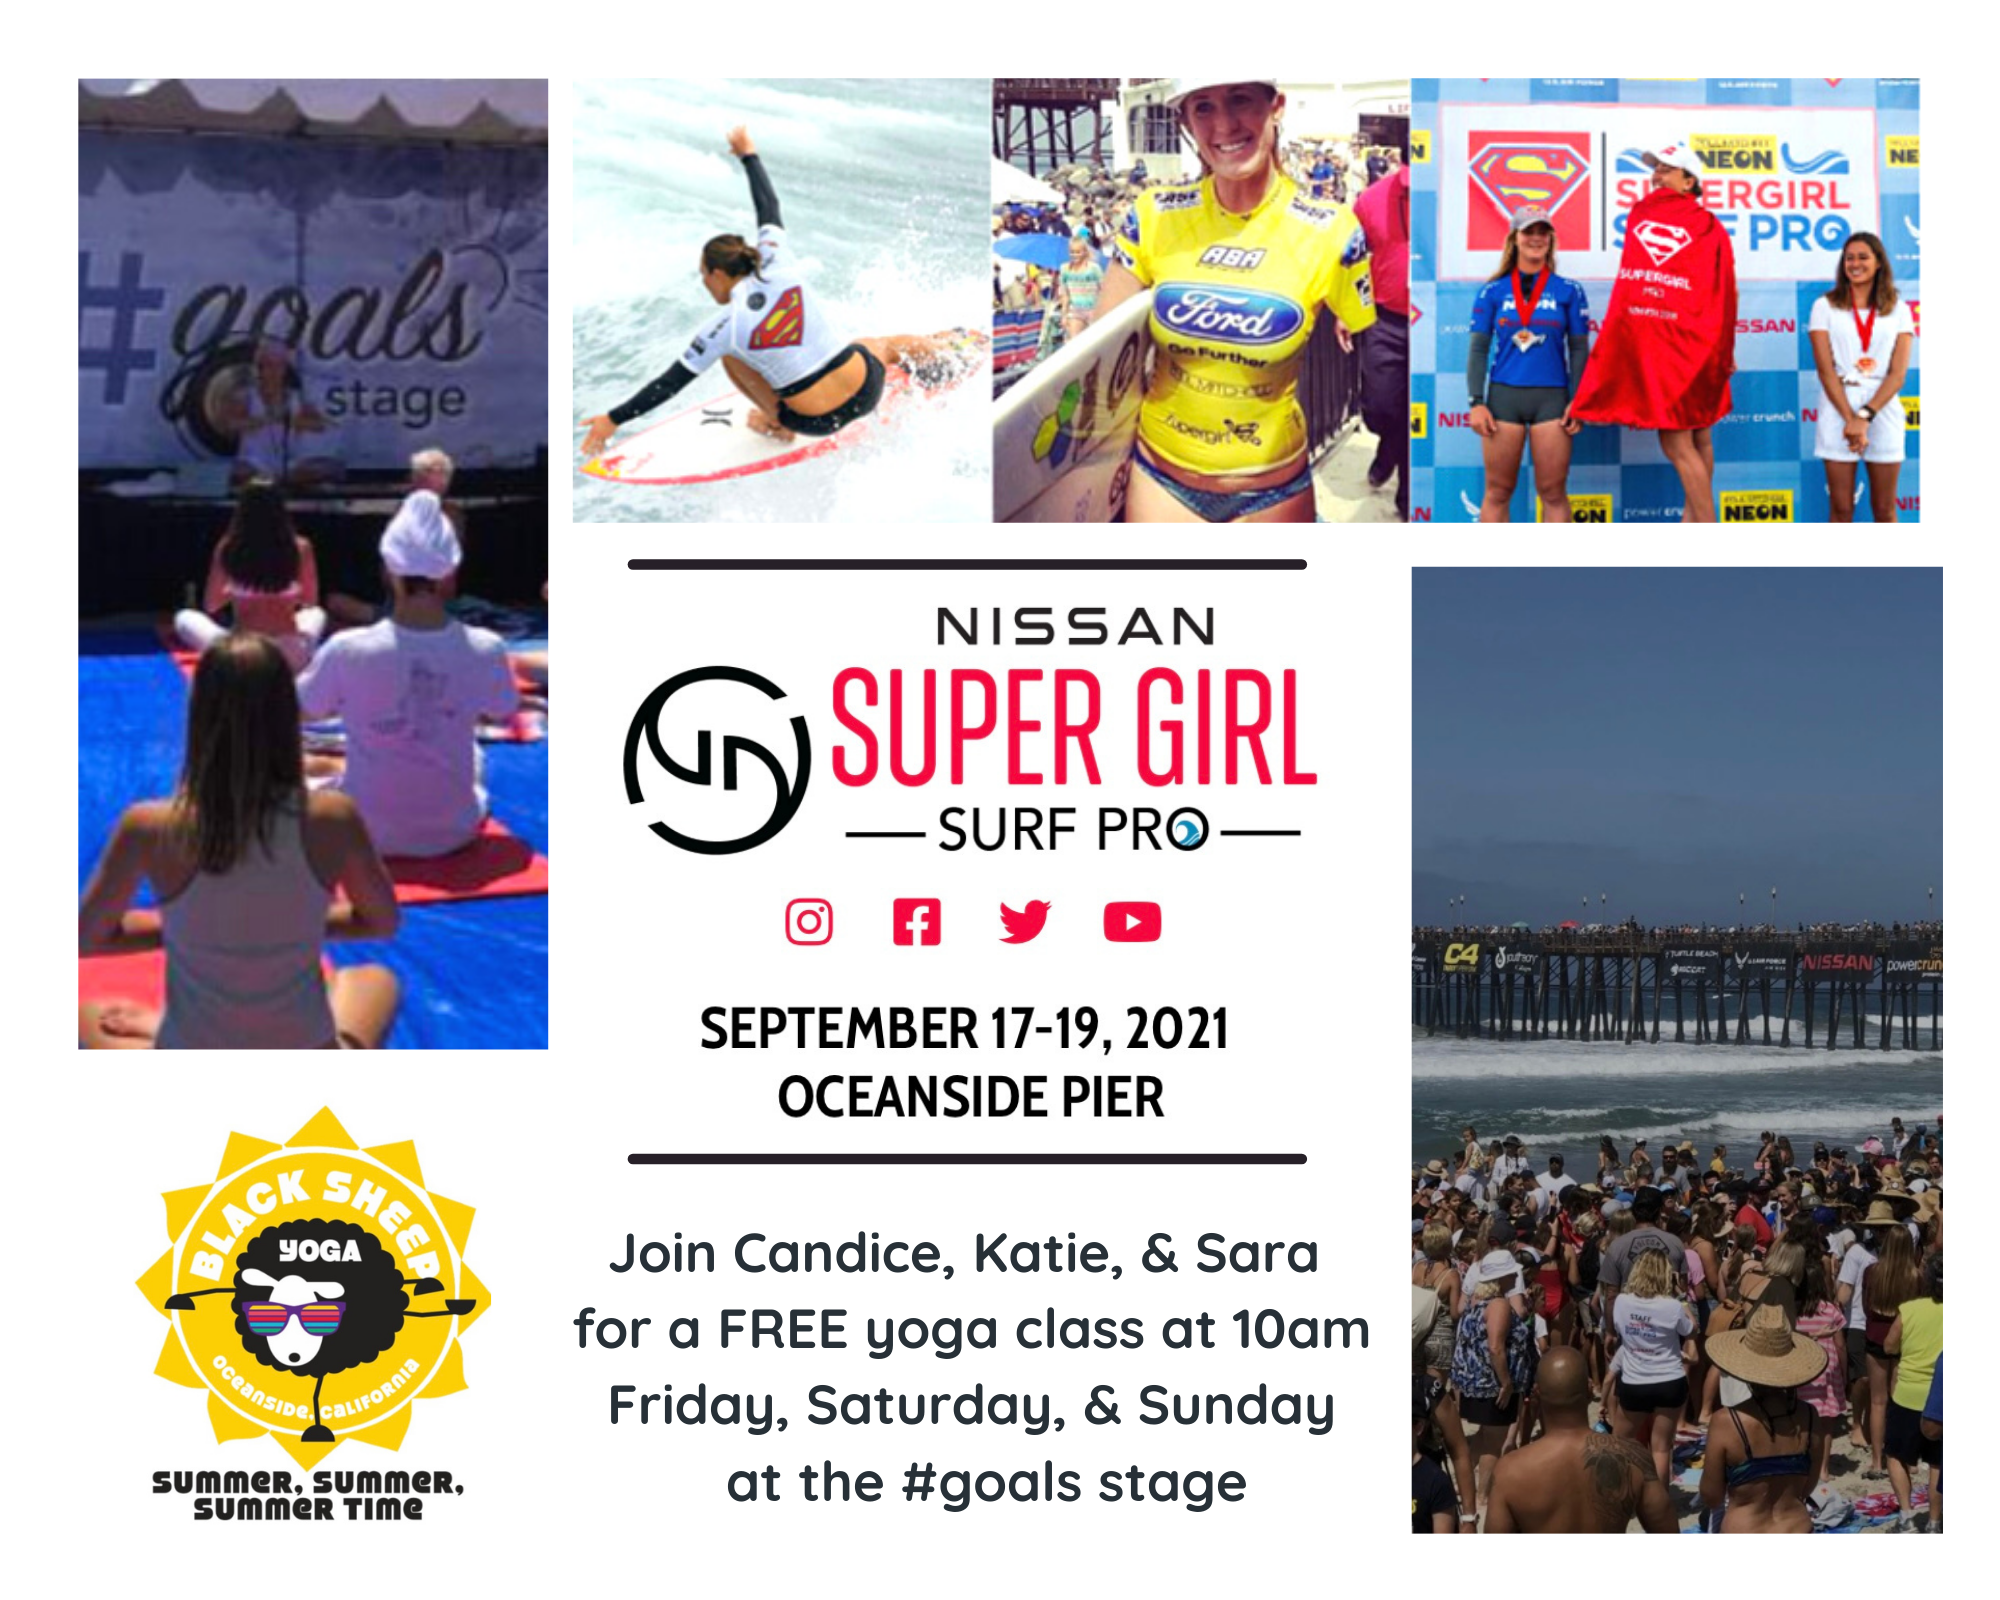 Join Black Sheep Yoga at the Nissan Super Girl Surf Pro for FREE YOGA CLASSES!